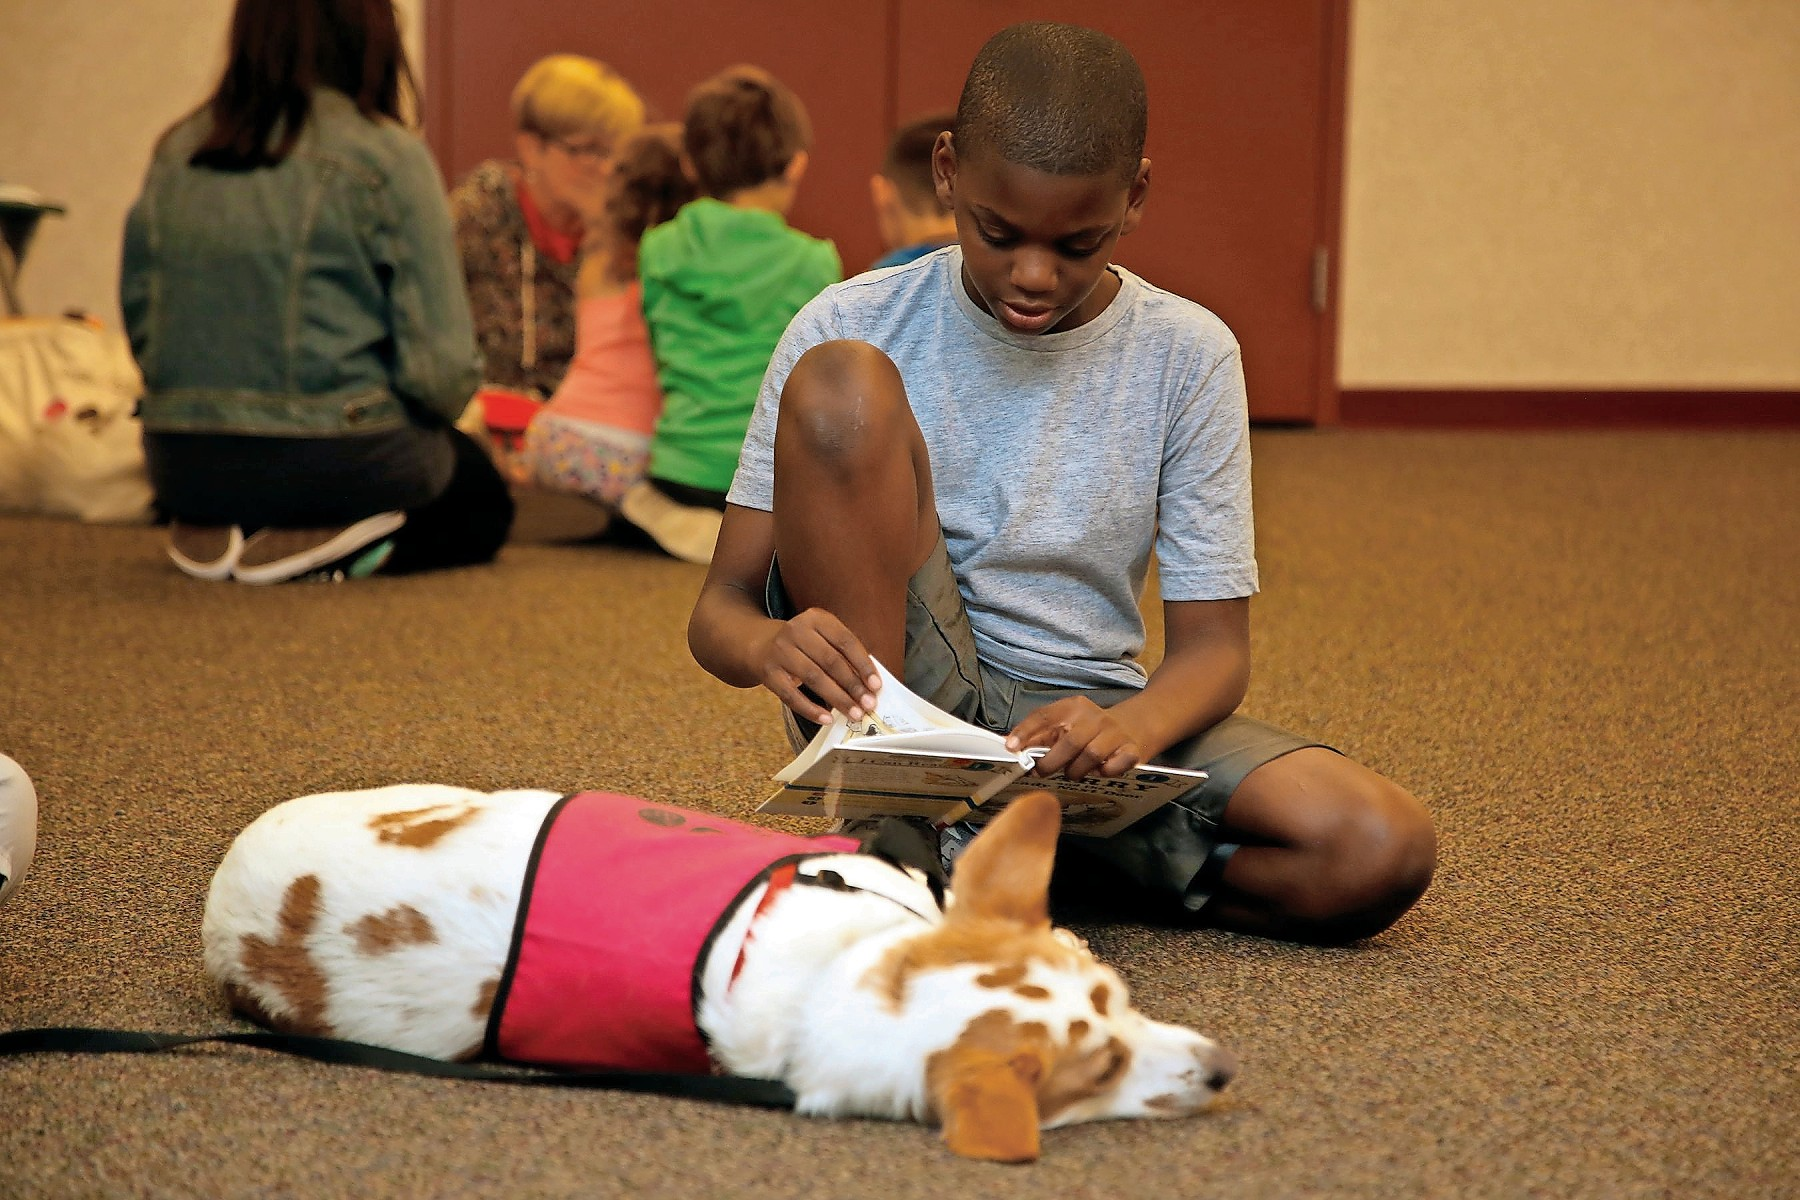 Aaron Stewart, 11, enjoyed a book as his canine friend, Chelsea, listened.